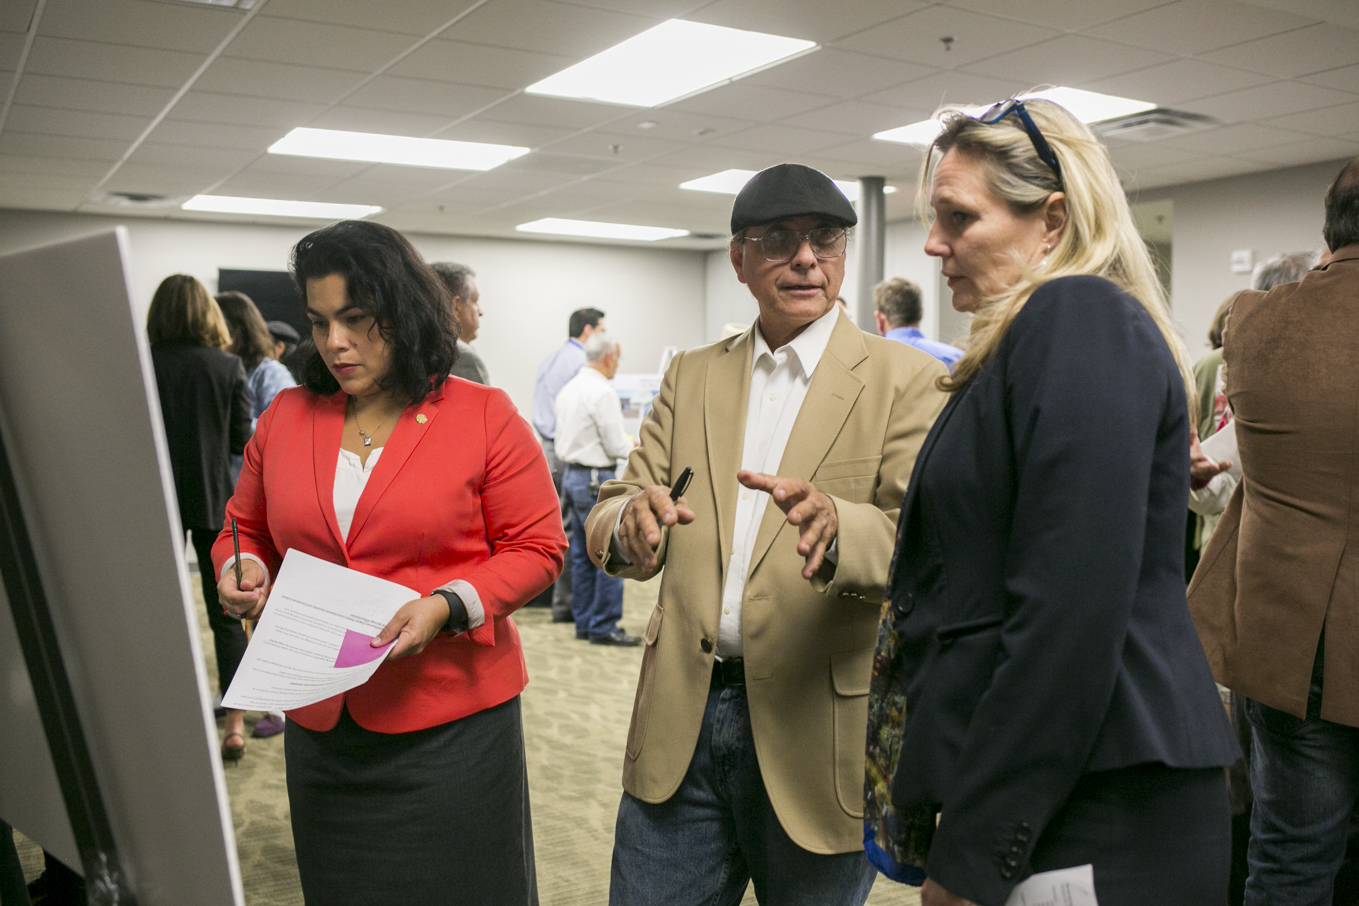 From left: Councilwoman Rebecca Viagran (D3), URBAN15 Music Director George Cisneros and World Heritage Director Colleen Swain talk about proposed public art locations.